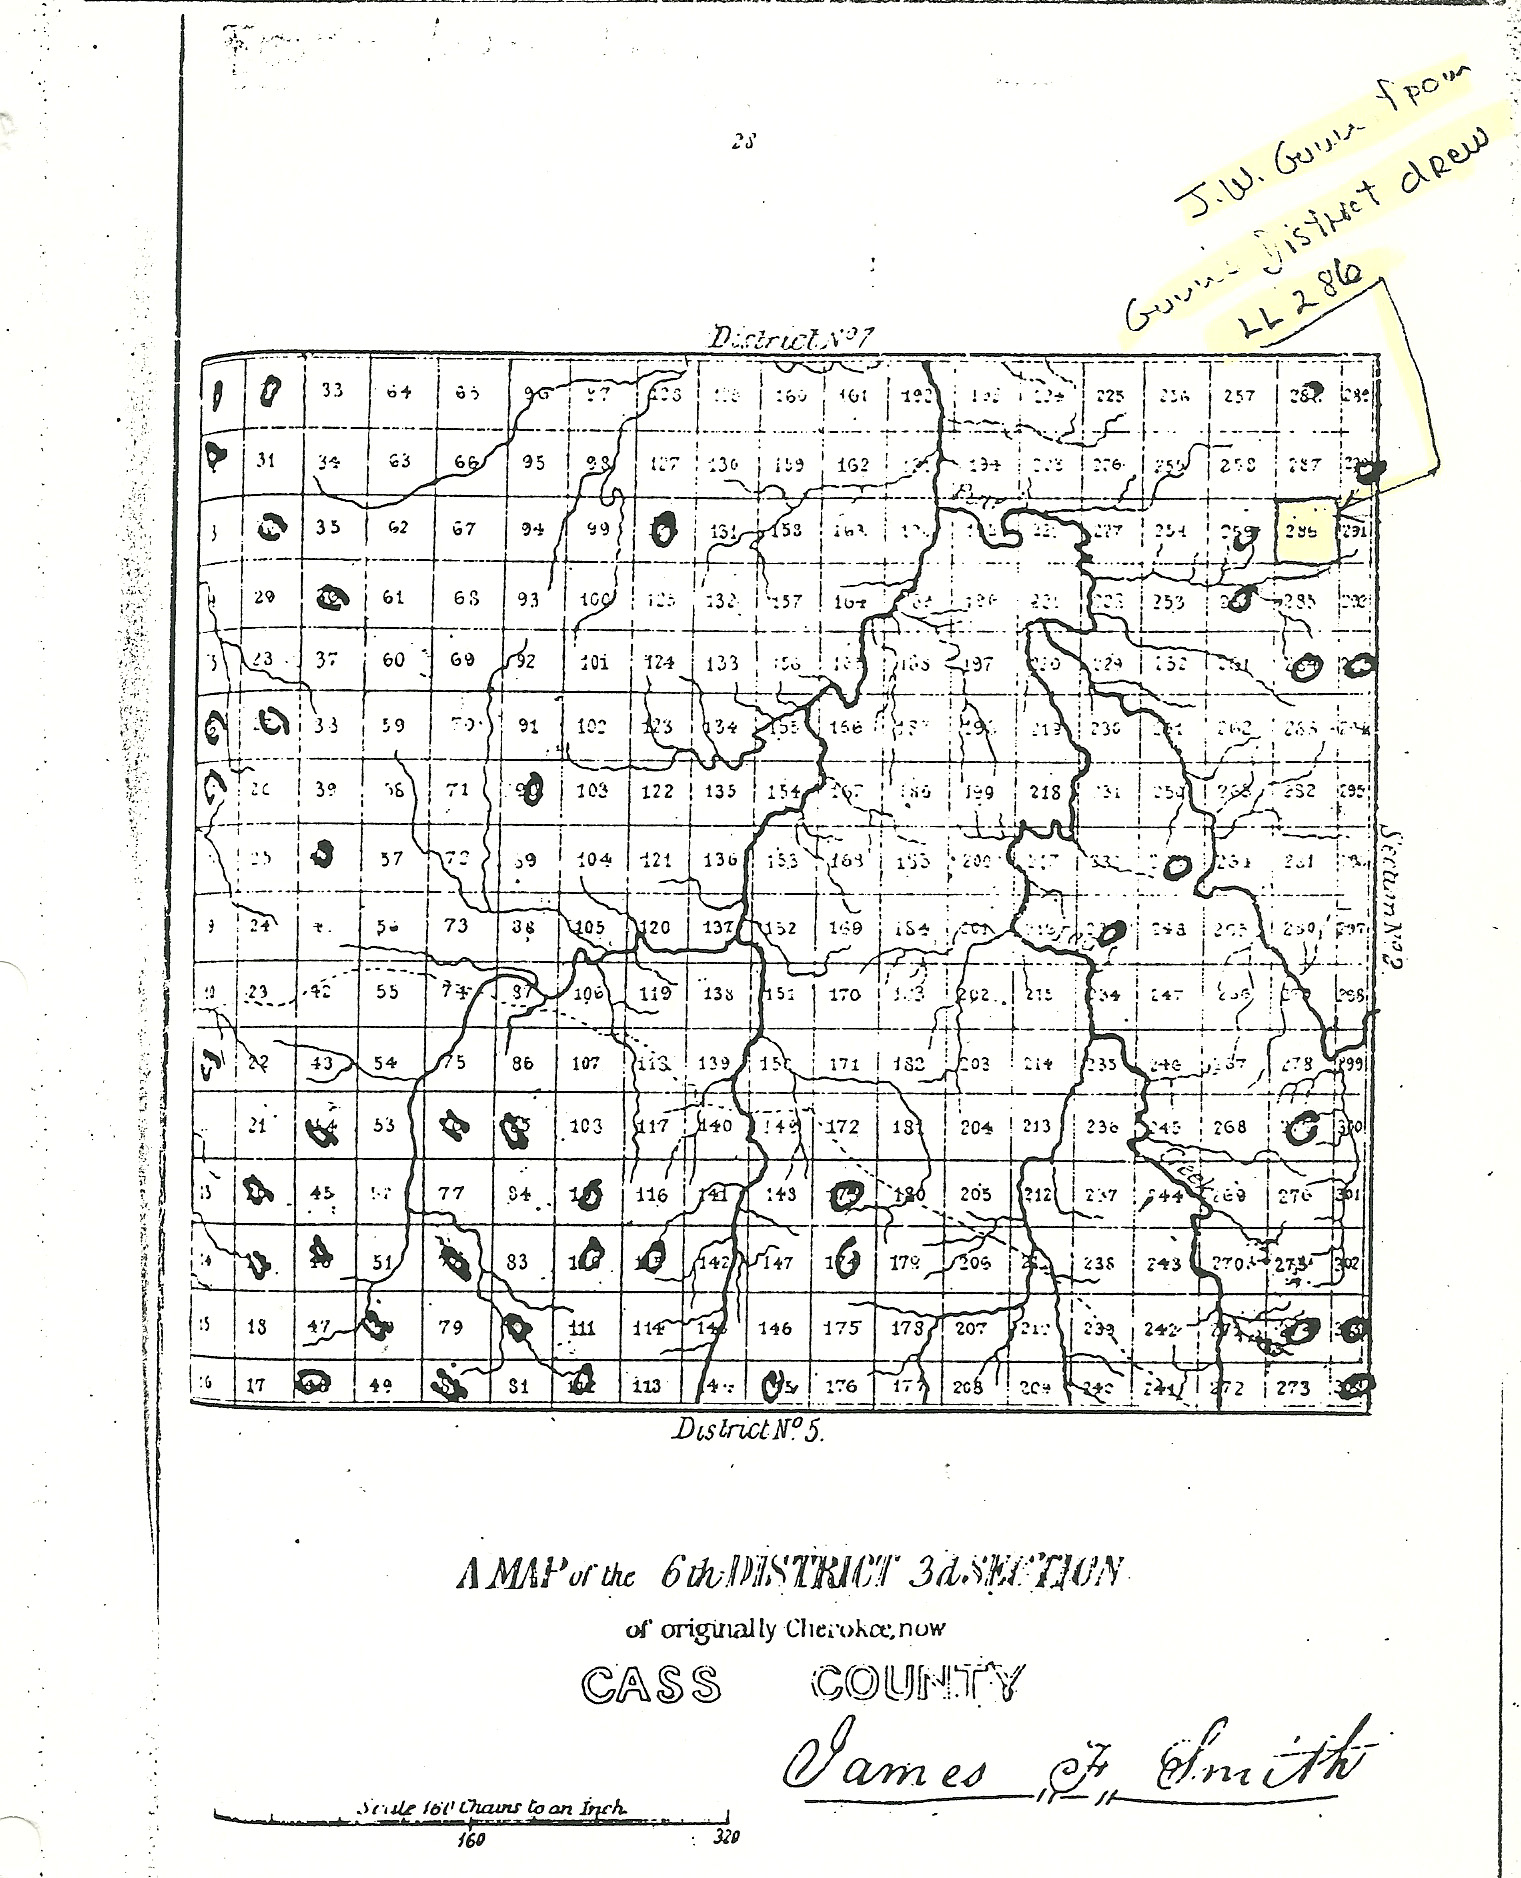 cherokee county All information on this site is prepared for the inventory of real property found within cherokee county all data is compiled from recorded deeds, plats, and other public records and data.